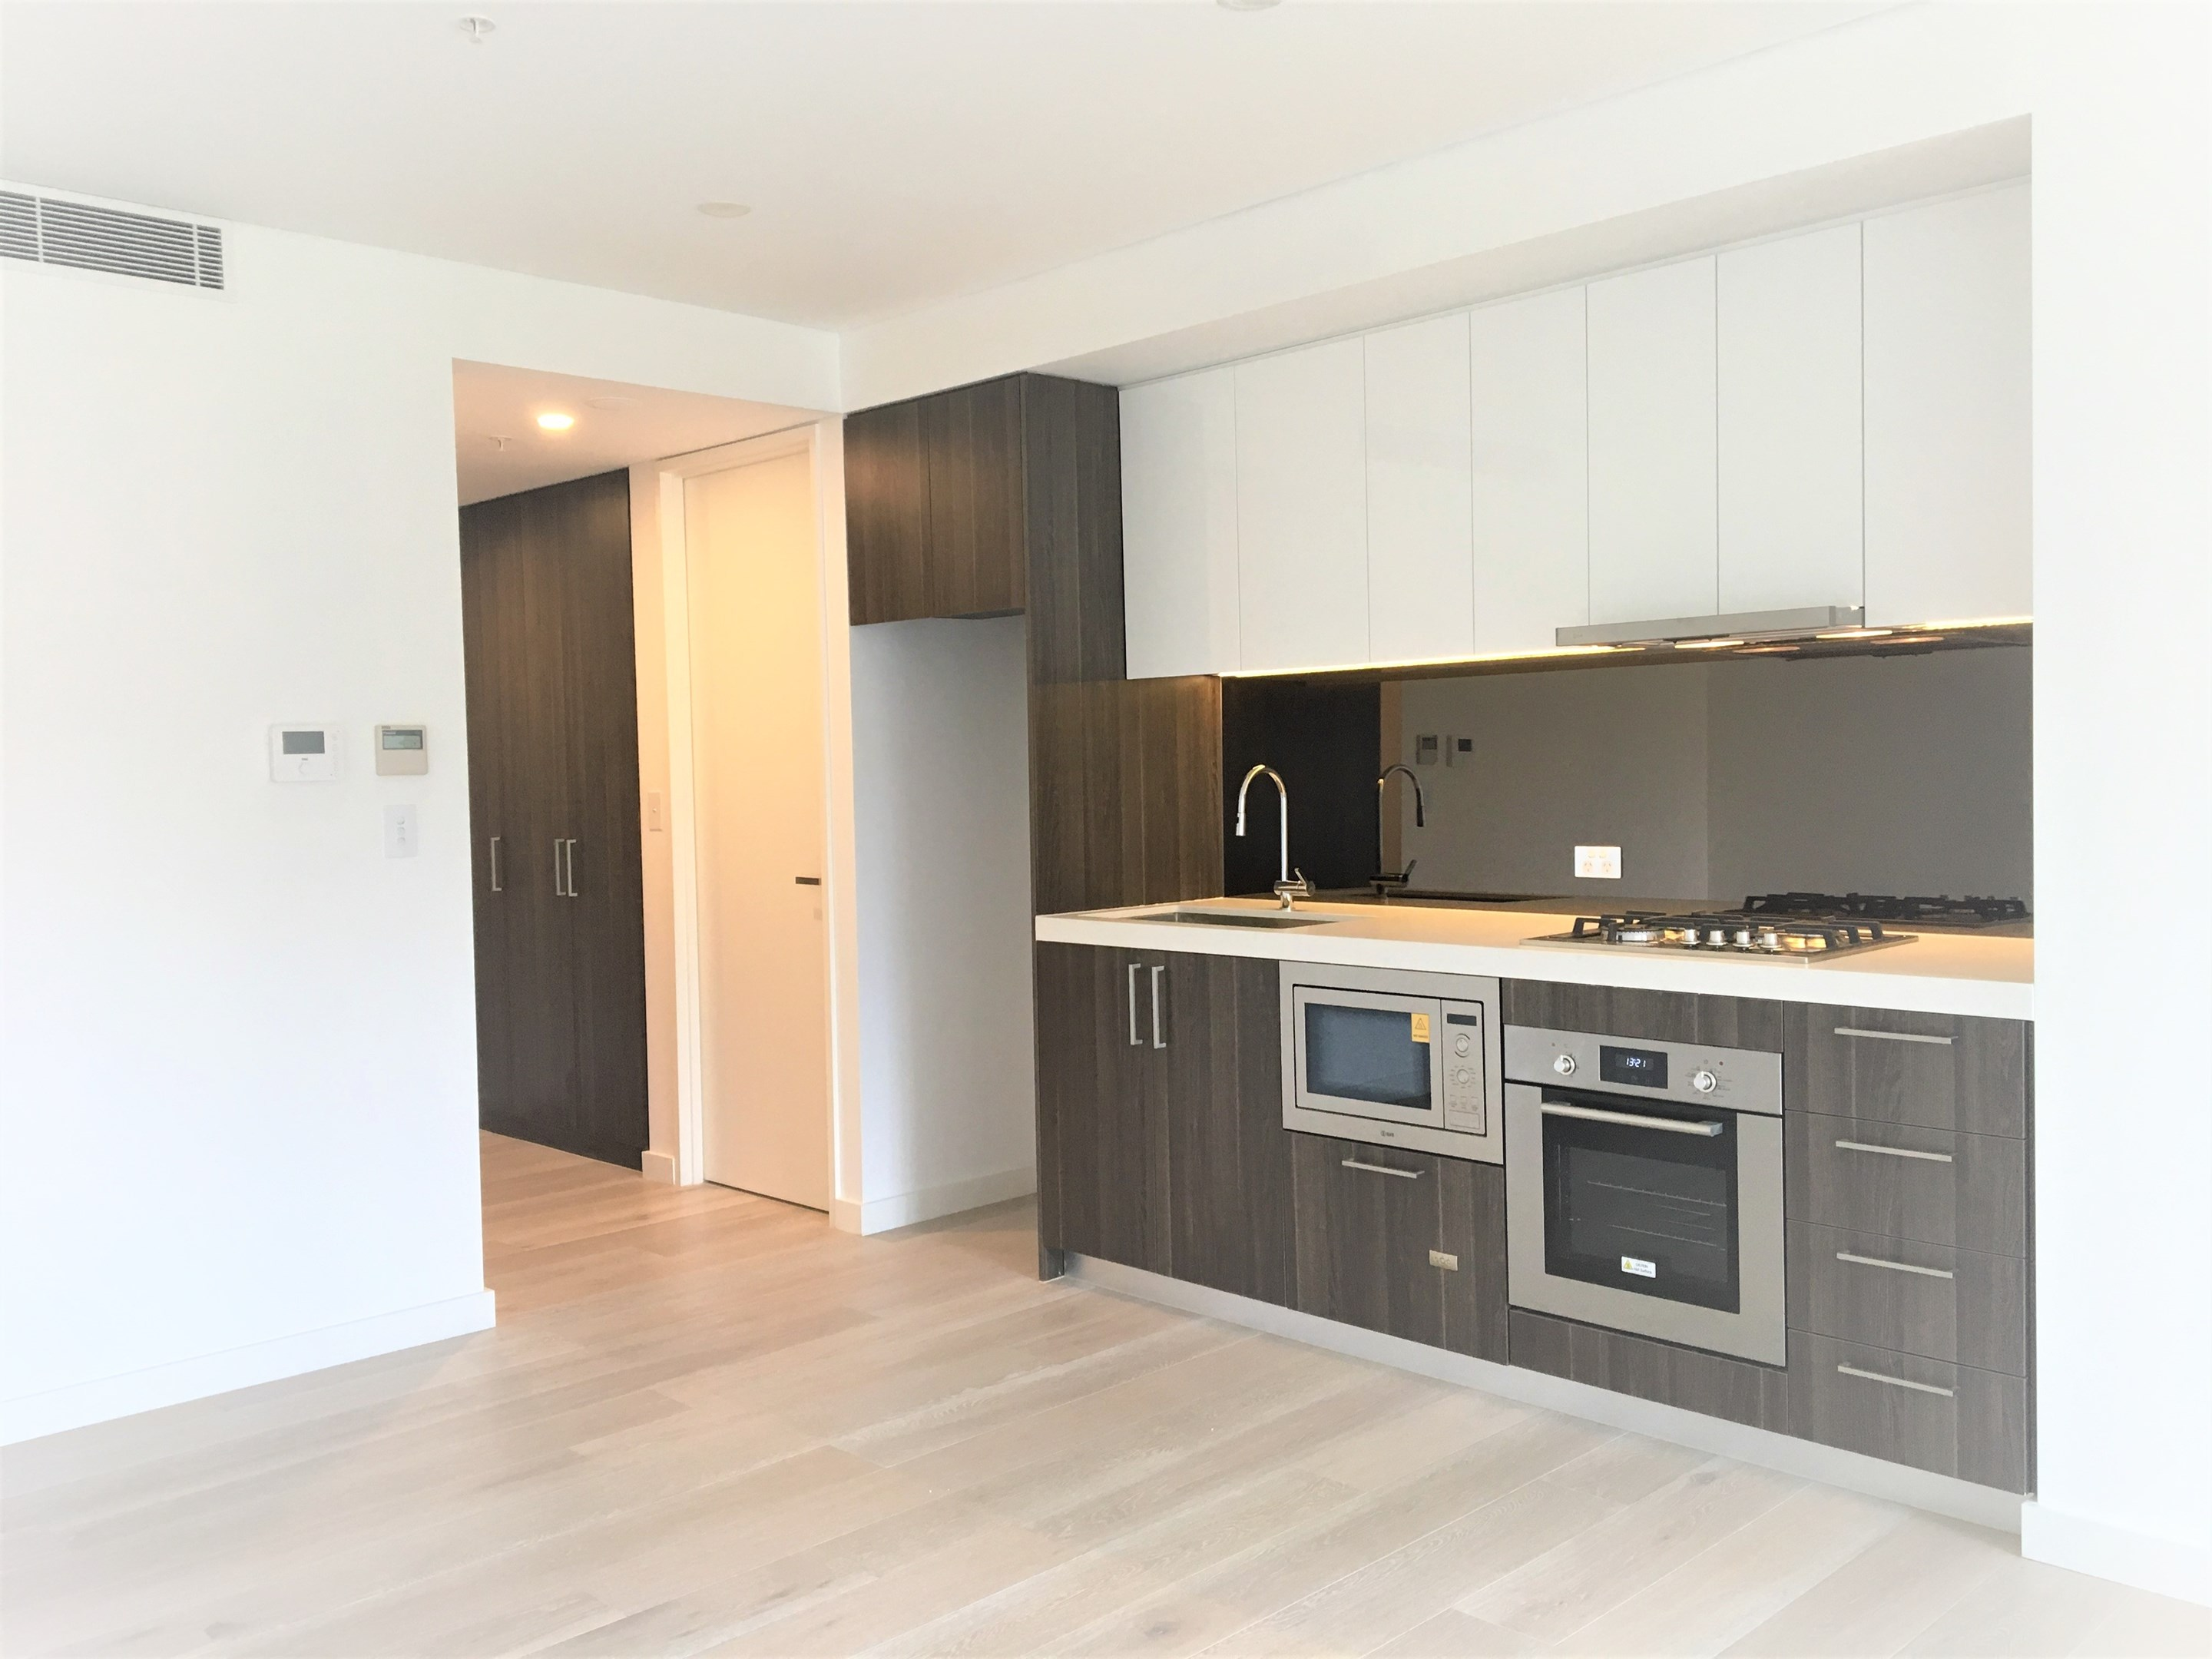 u 84 108 anzac parade kensington nsw 2033 apartment for rent $820